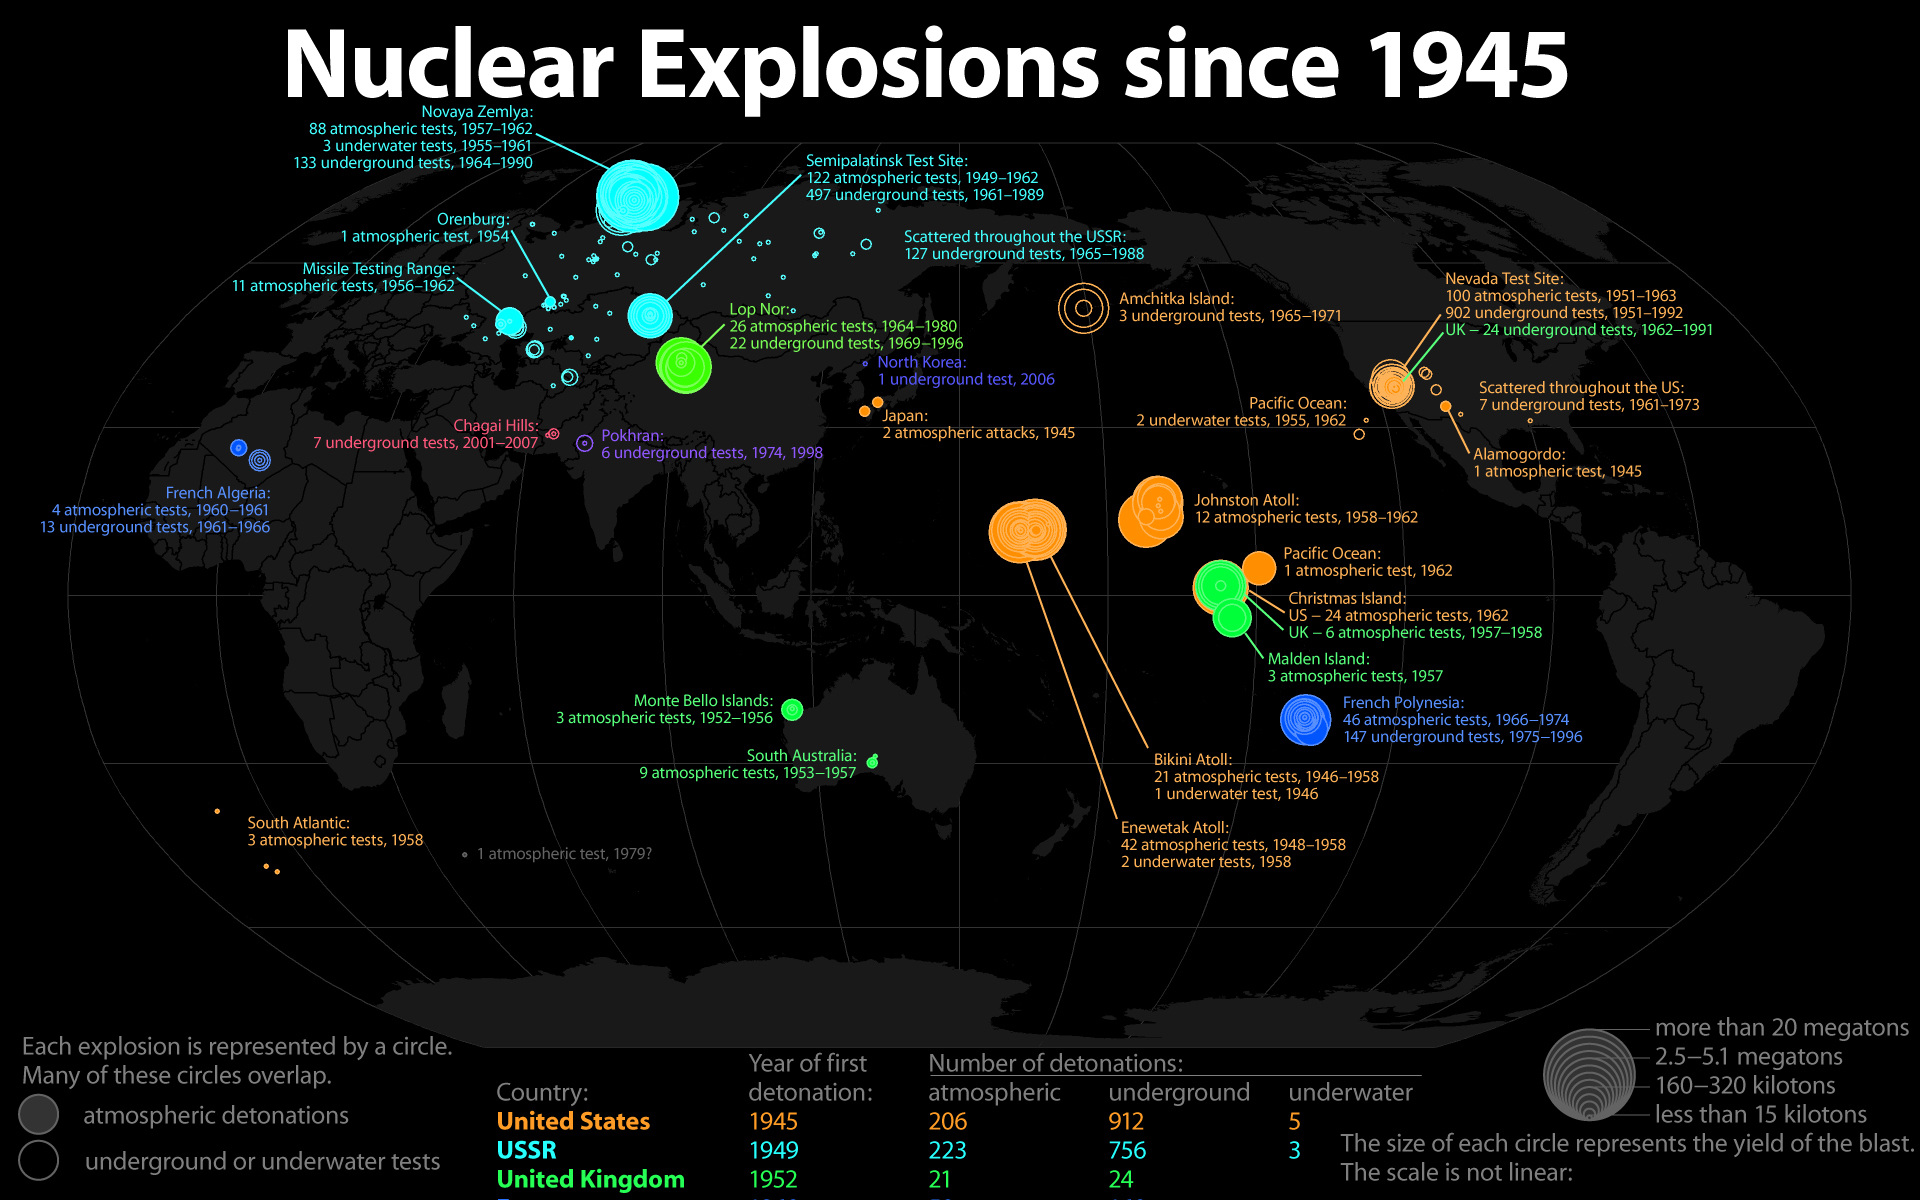 Infographics nuclear explosions information world map scheme infographics nuclear explosions information world map scheme wallpaper 1920x1200 8358 wallpaperup gumiabroncs Choice Image